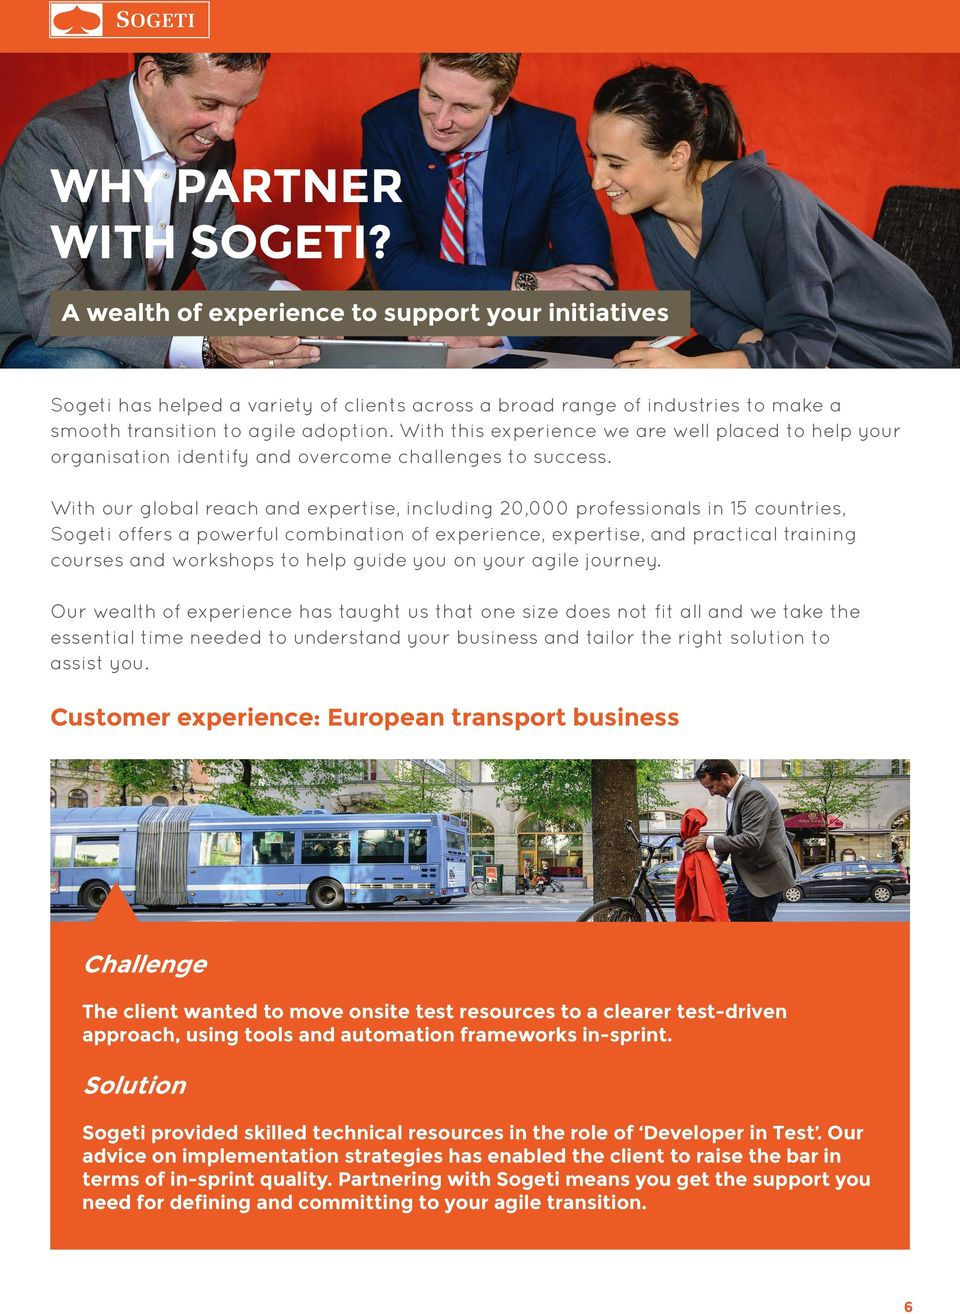 With our global reach and expertise, including 20,000 professionals in 15 countries, Sogeti offers a powerful combination of experience, expertise, and practical training courses and workshops to